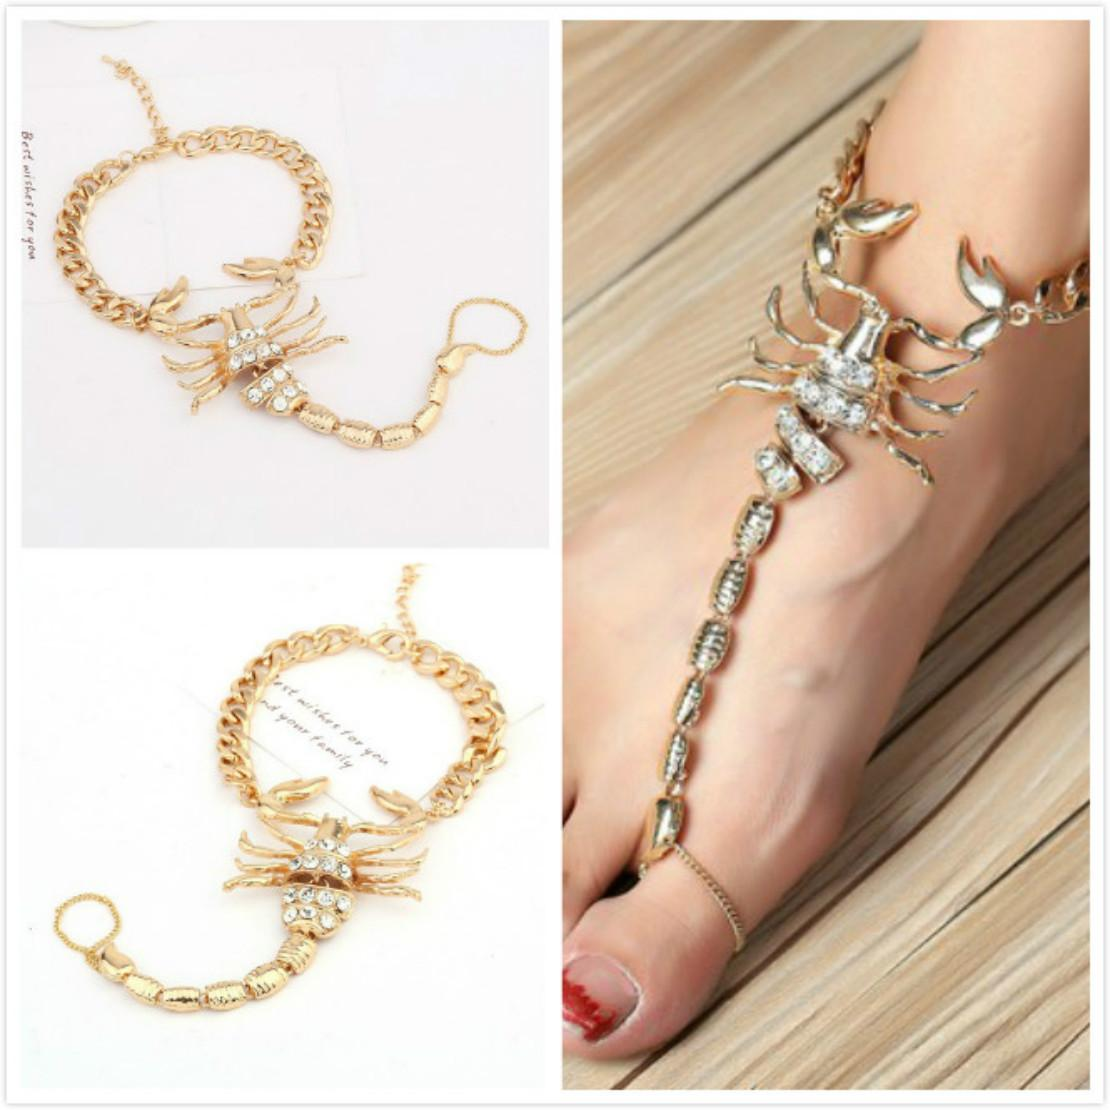 leg star gift free yoga charm summer bracelet jewelry chain new shipping pendant layer multi shippinganklets foot anklet beach anklets